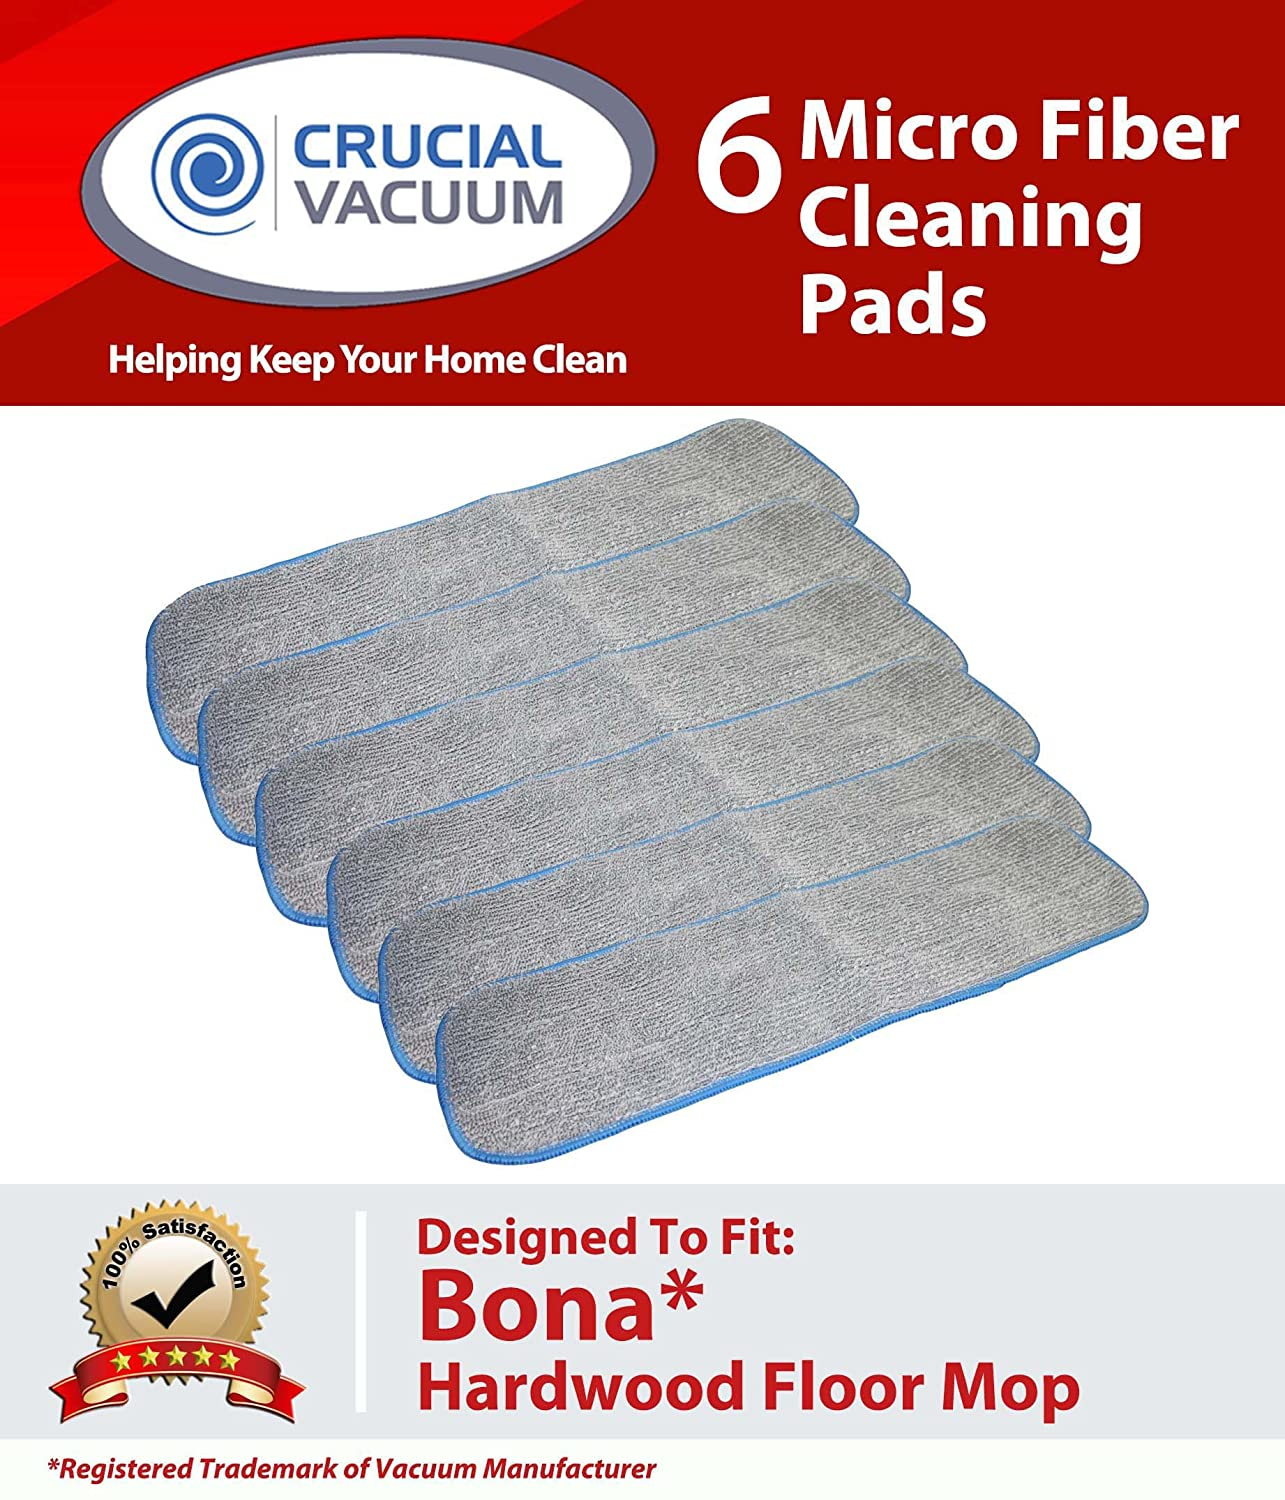 Crucial Vacuum 6 Bona Hardwood Floor Micro Fiber Cleaning Pad Fits Bona Hardwood Floor Mops, 15in Mohawk, Bona, Orange Glow; AX0003053 at Sears.com